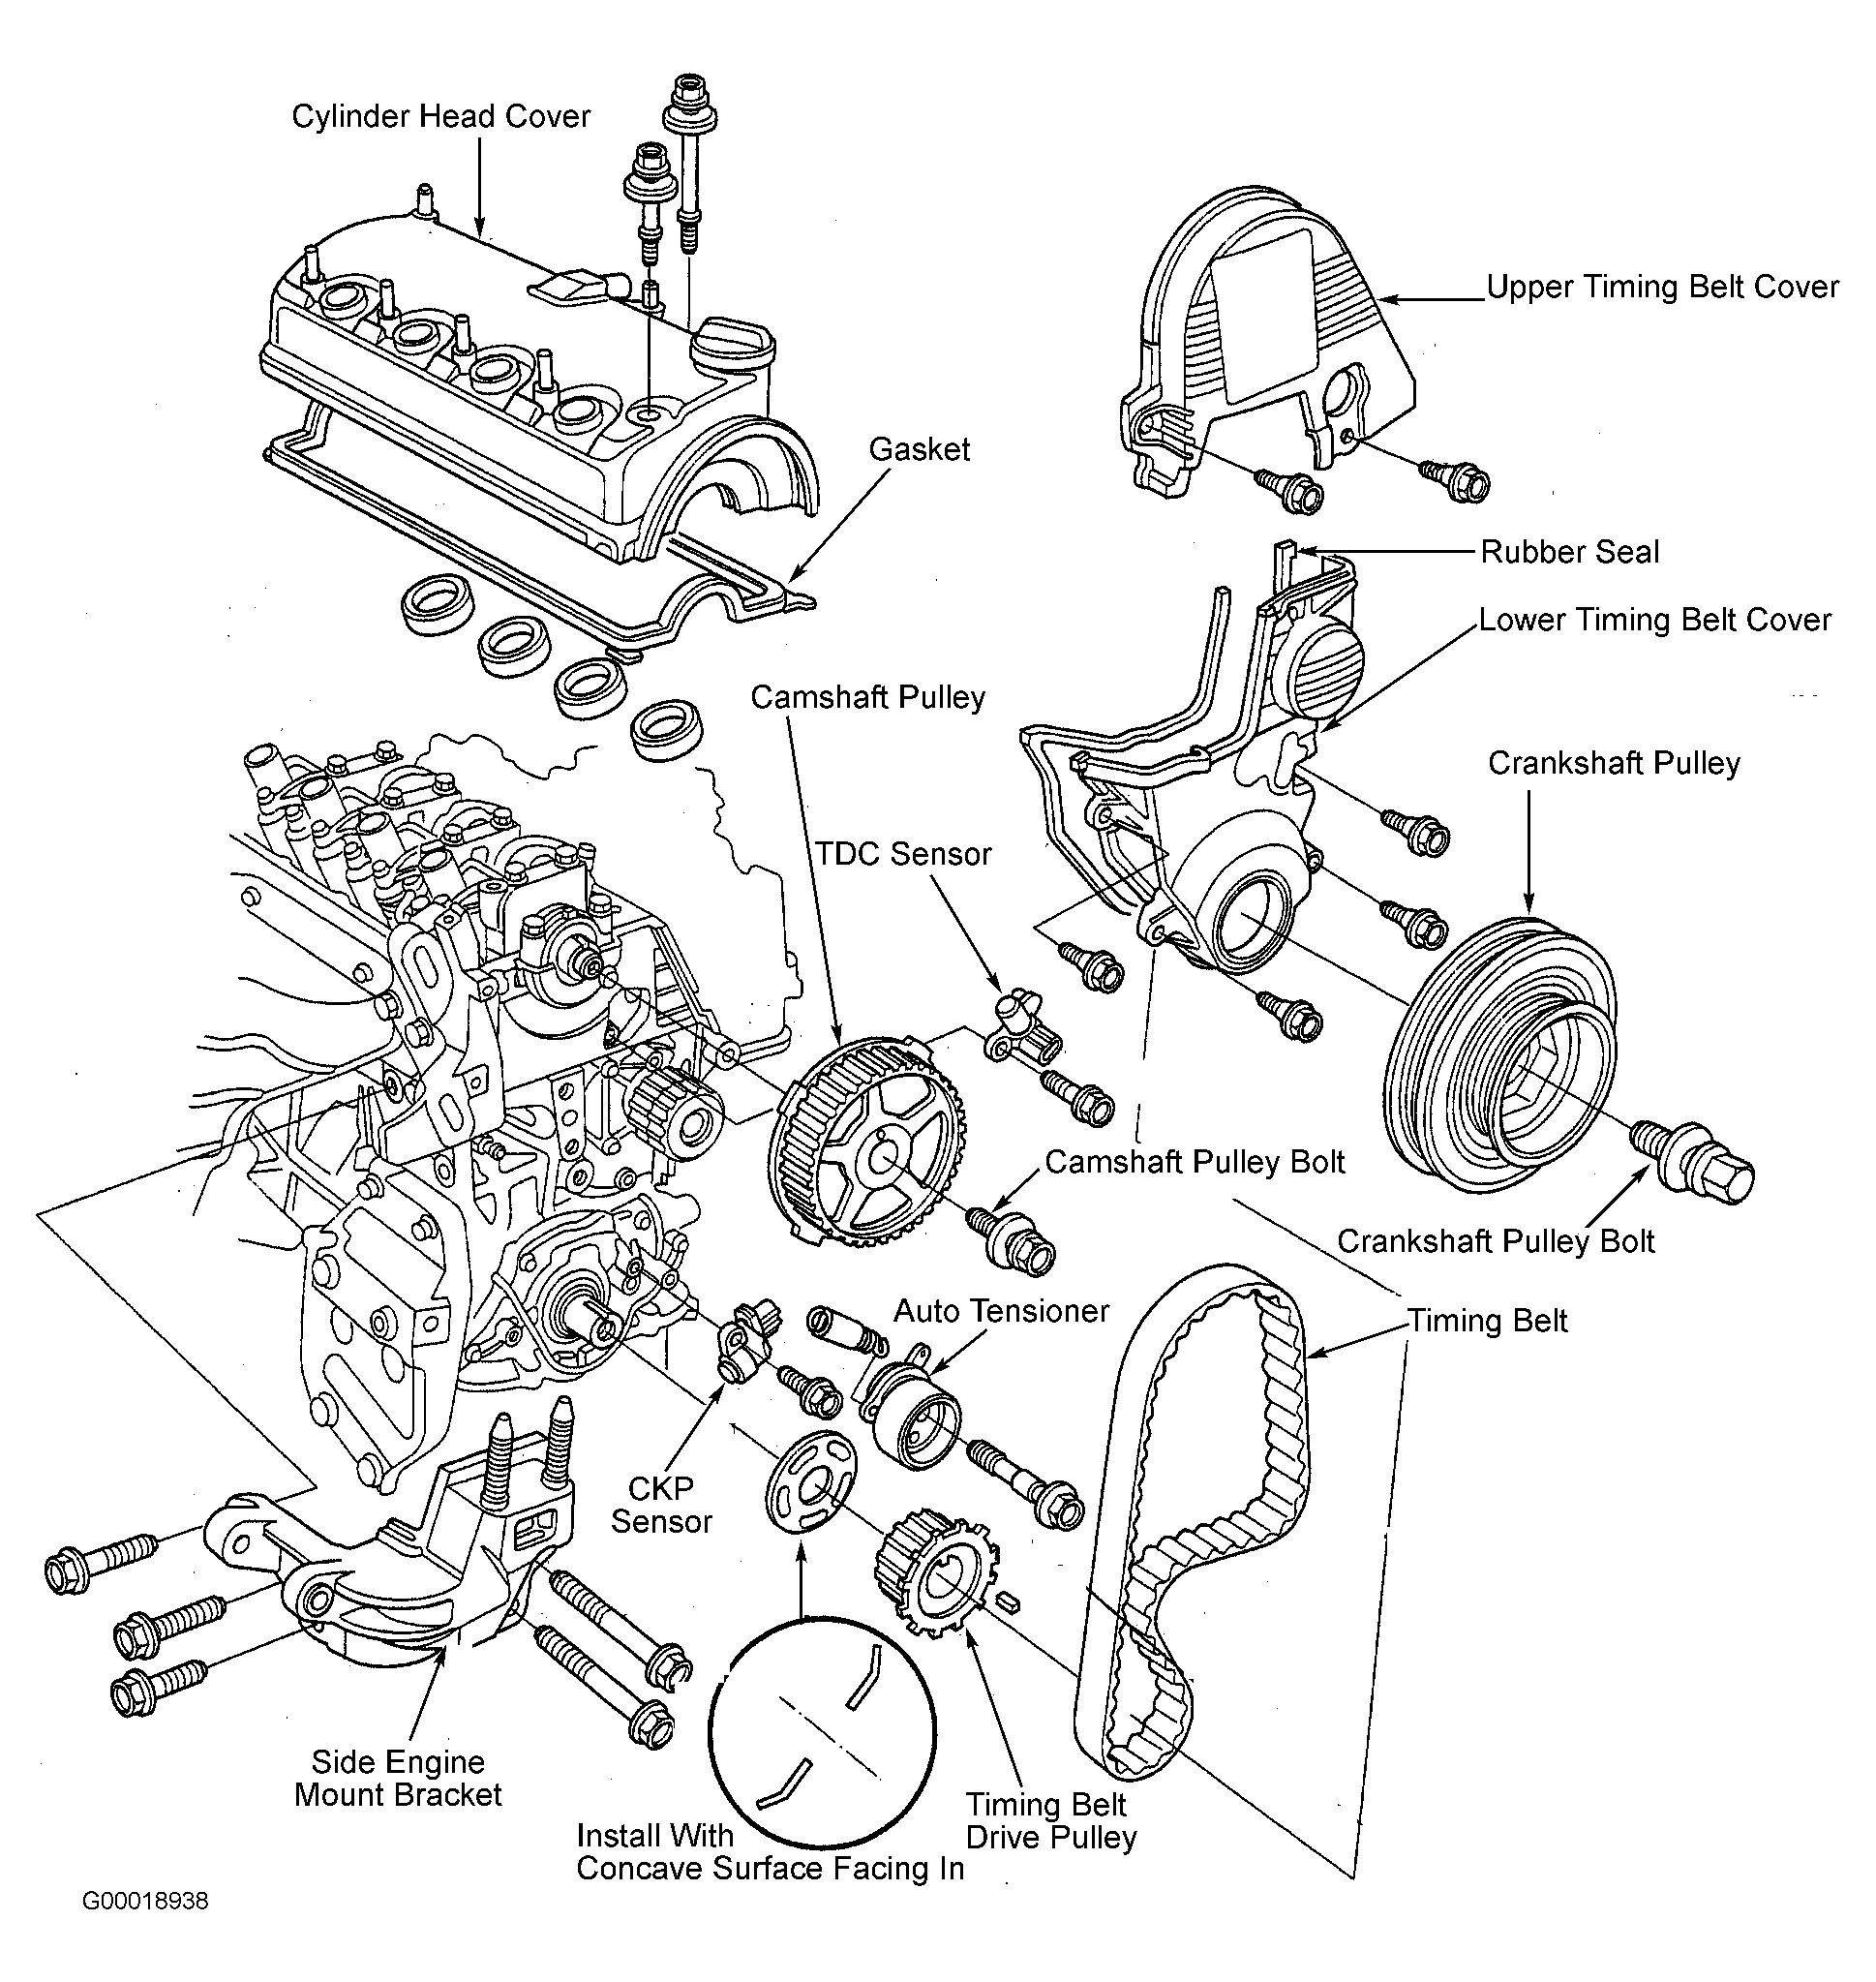 F22b Engine Diagram 7 1 Crest3dwhite De \u2022f22b 11 Gesundheitspraxis Muelhoff U2022: Honda Element Radiator Fan Diagram At Chusao.net